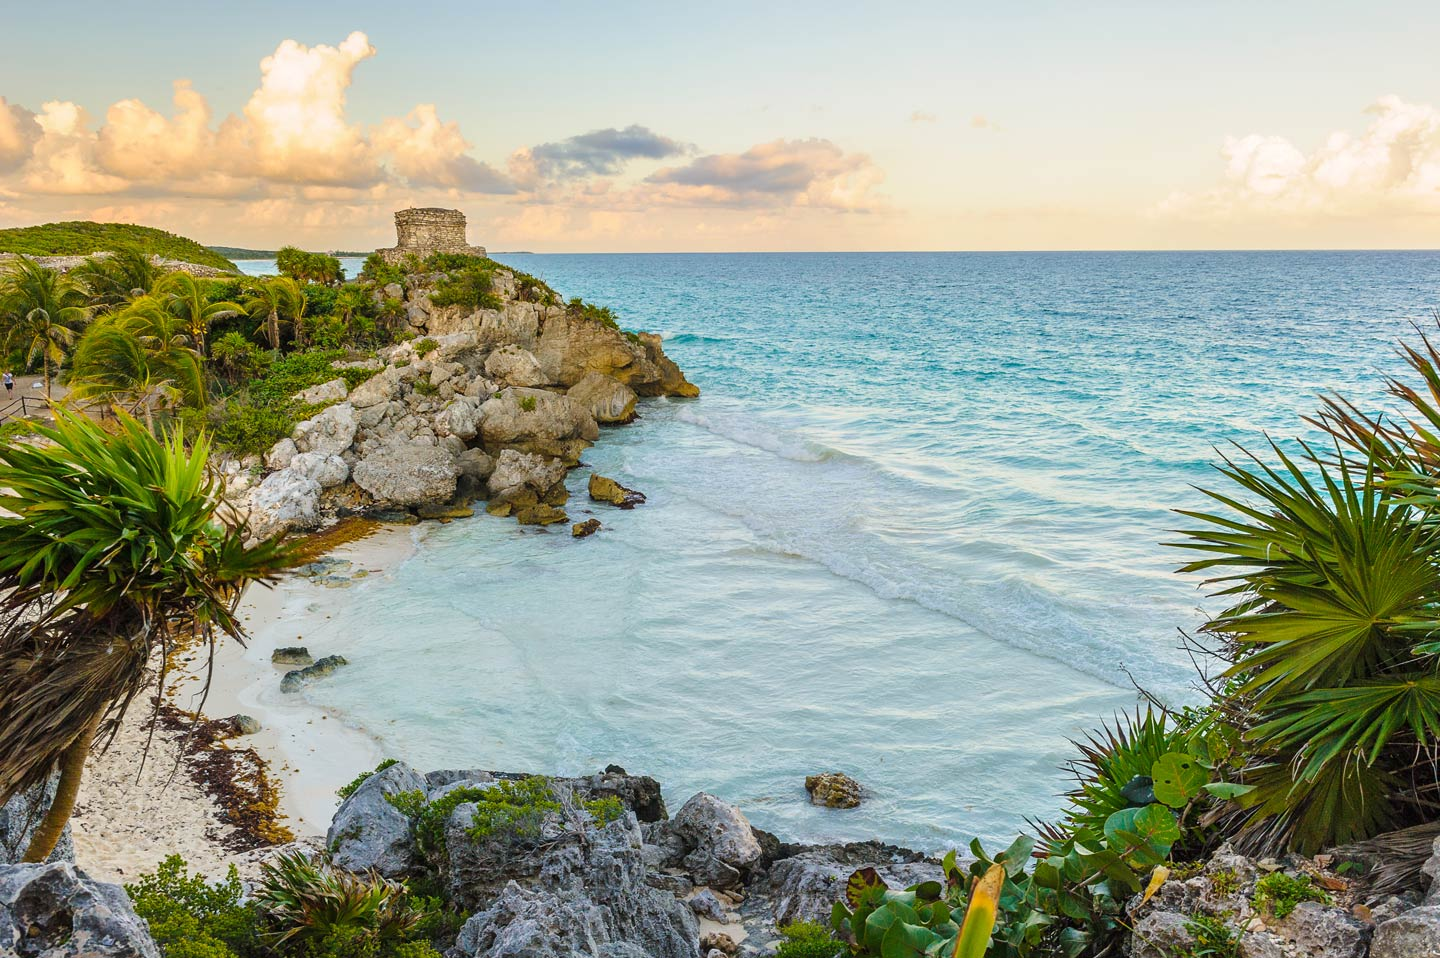 The castle at Tulum on the beach at sunset